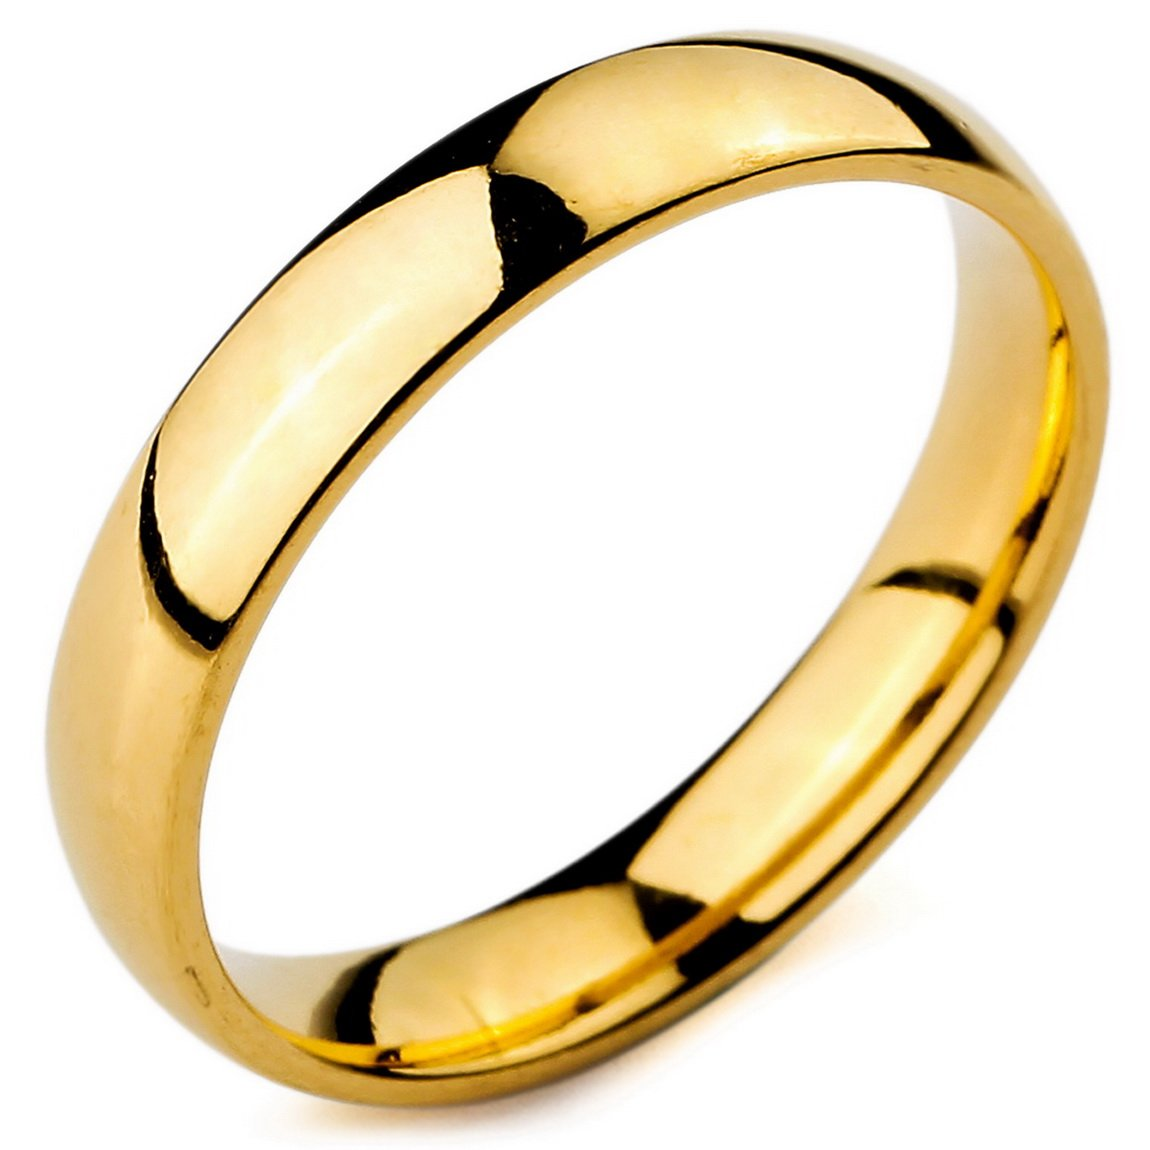 INBLUE Men,Women's Wide 4mm Stainless Steel Ring Band Gold Tone Wedding Size8